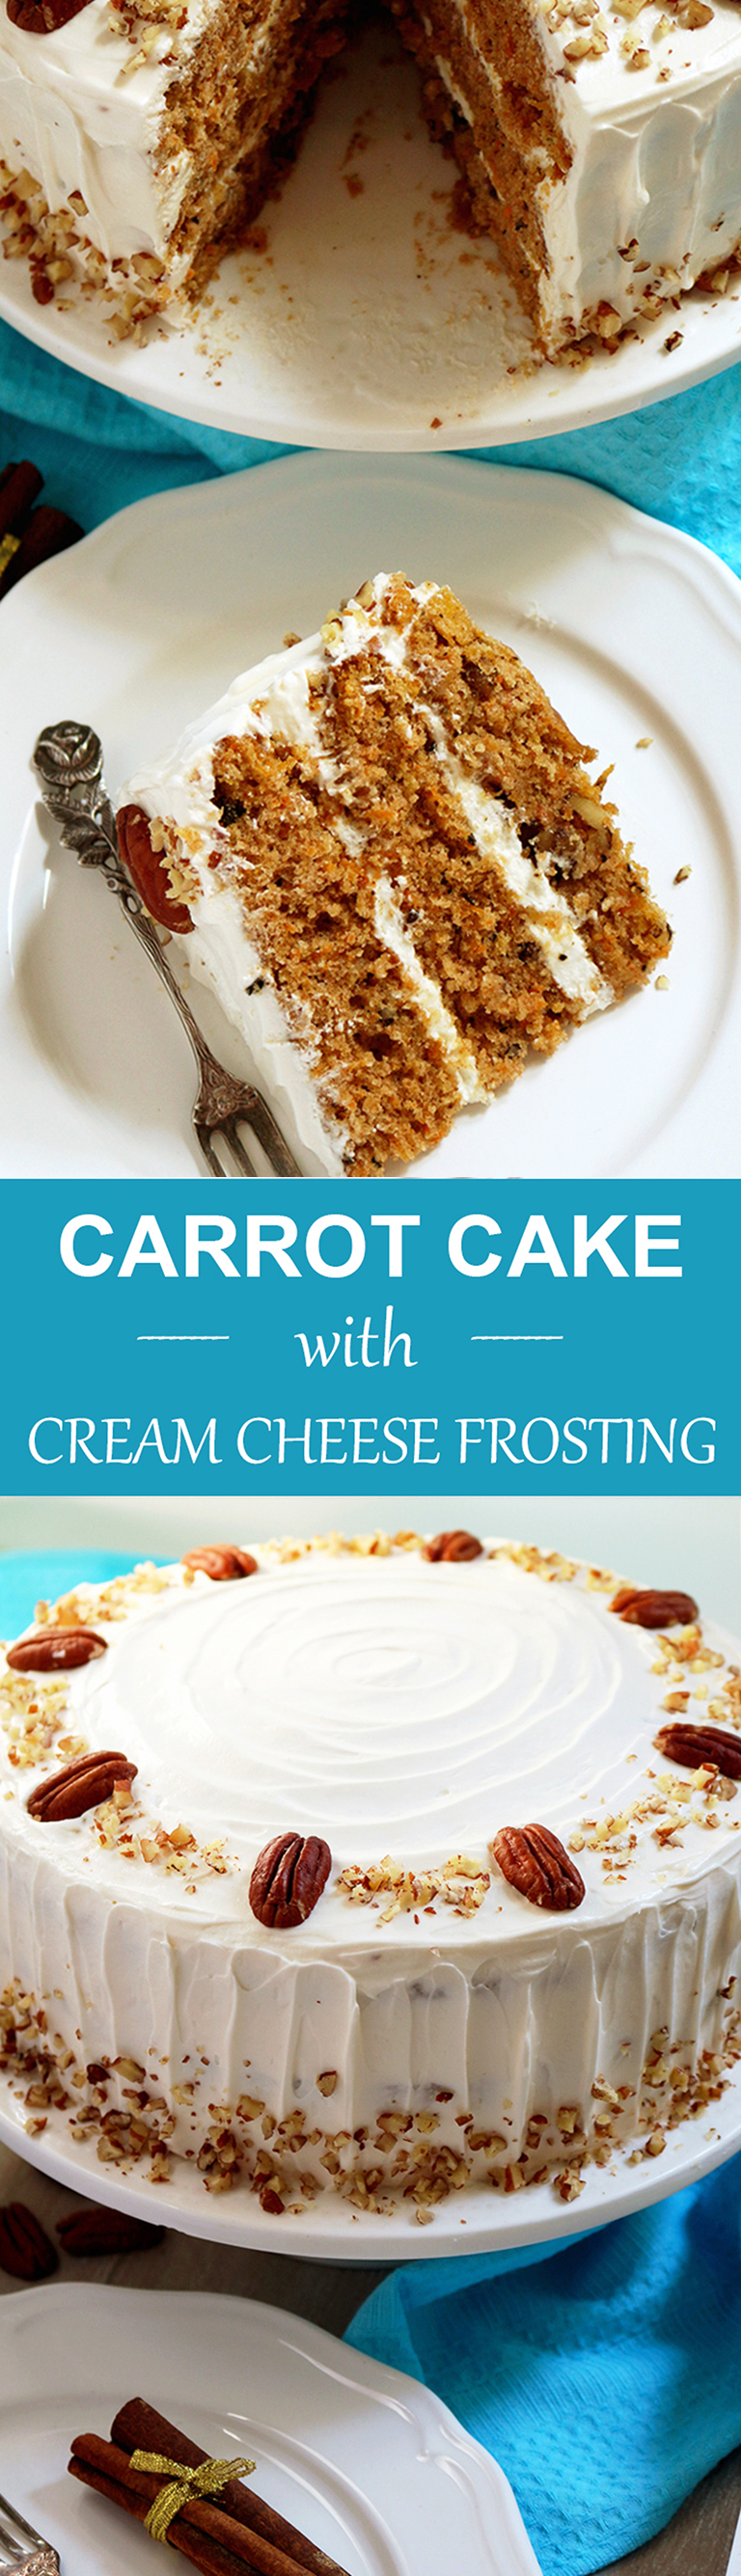 Special dessert for special occasions – Carrot Cake with Cream Cheese Frosting